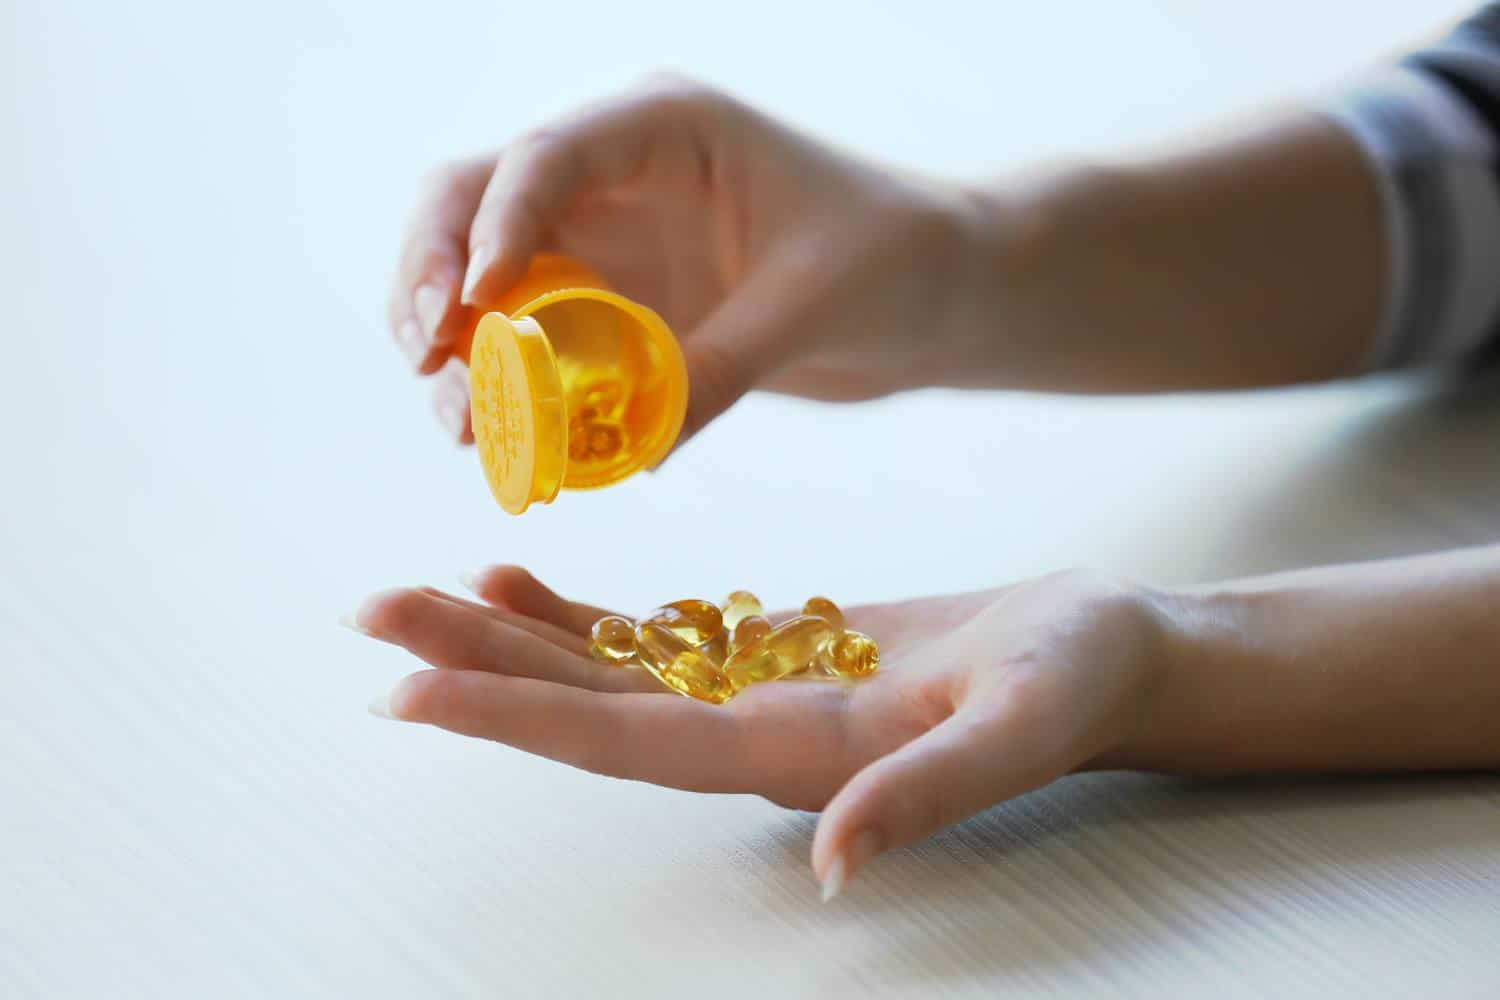 Fish oil supplement capsules.